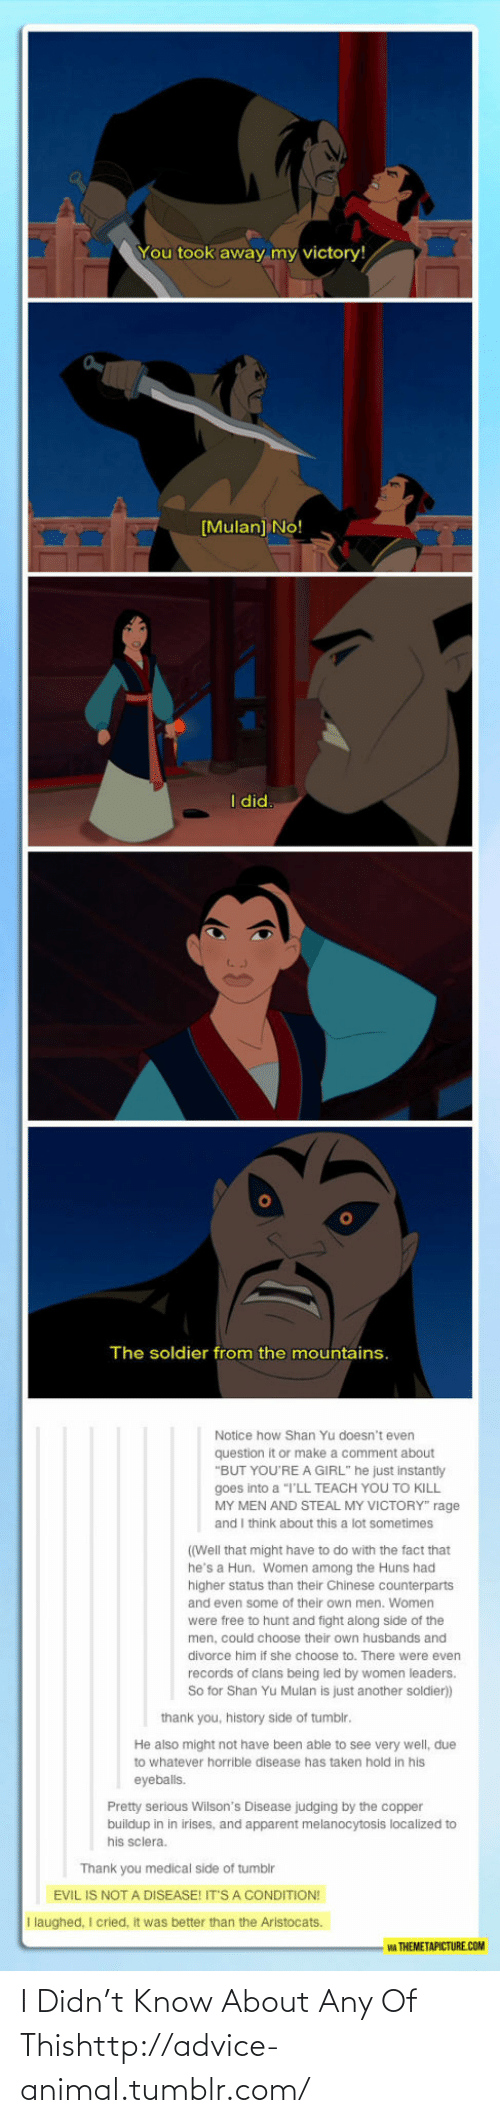 """Hold In: You took away my victory!  [Mulan] No!  I did.  The soldier from the mountains.  Notice how Shan Yu doesn't even  question it or make a comment about  """"BUT YOU'RE A GIRL"""" he just instantly  goes into a """"I'LL TEACH YOU TO KILL  MY MEN AND STEAL MY VICTORY"""" rage  and I think about this a lot sometimes  ((Well that might have to do with the fact that  he's a Hun. Women among the Huns had  higher status than their Chinese counterparts  and even some of their own men. Women  were free to hunt and fight along side of the  men, could choose their own husbands and  divorce him if she choose to. There were even  records of clans being led by women leaders.  So for Shan Yu Mulan is just another soldier)  thank you, history side of tumblr.  He also might not have been able to see very well, due  to whatever horrible disease has taken hold in his  eyeballs.  Pretty serious Wilson's Disease judging by the copper  buildup in in irises, and apparent melanocytosis localized to  his sclera.  Thank you medical side of tumblr  EVIL IS NOT A DISEASE! IT'S A CONDITION!  I laughed, I cried, it was better than the Aristocats.  WA THEMETAPICTURE.COM I Didn't Know About Any Of Thishttp://advice-animal.tumblr.com/"""